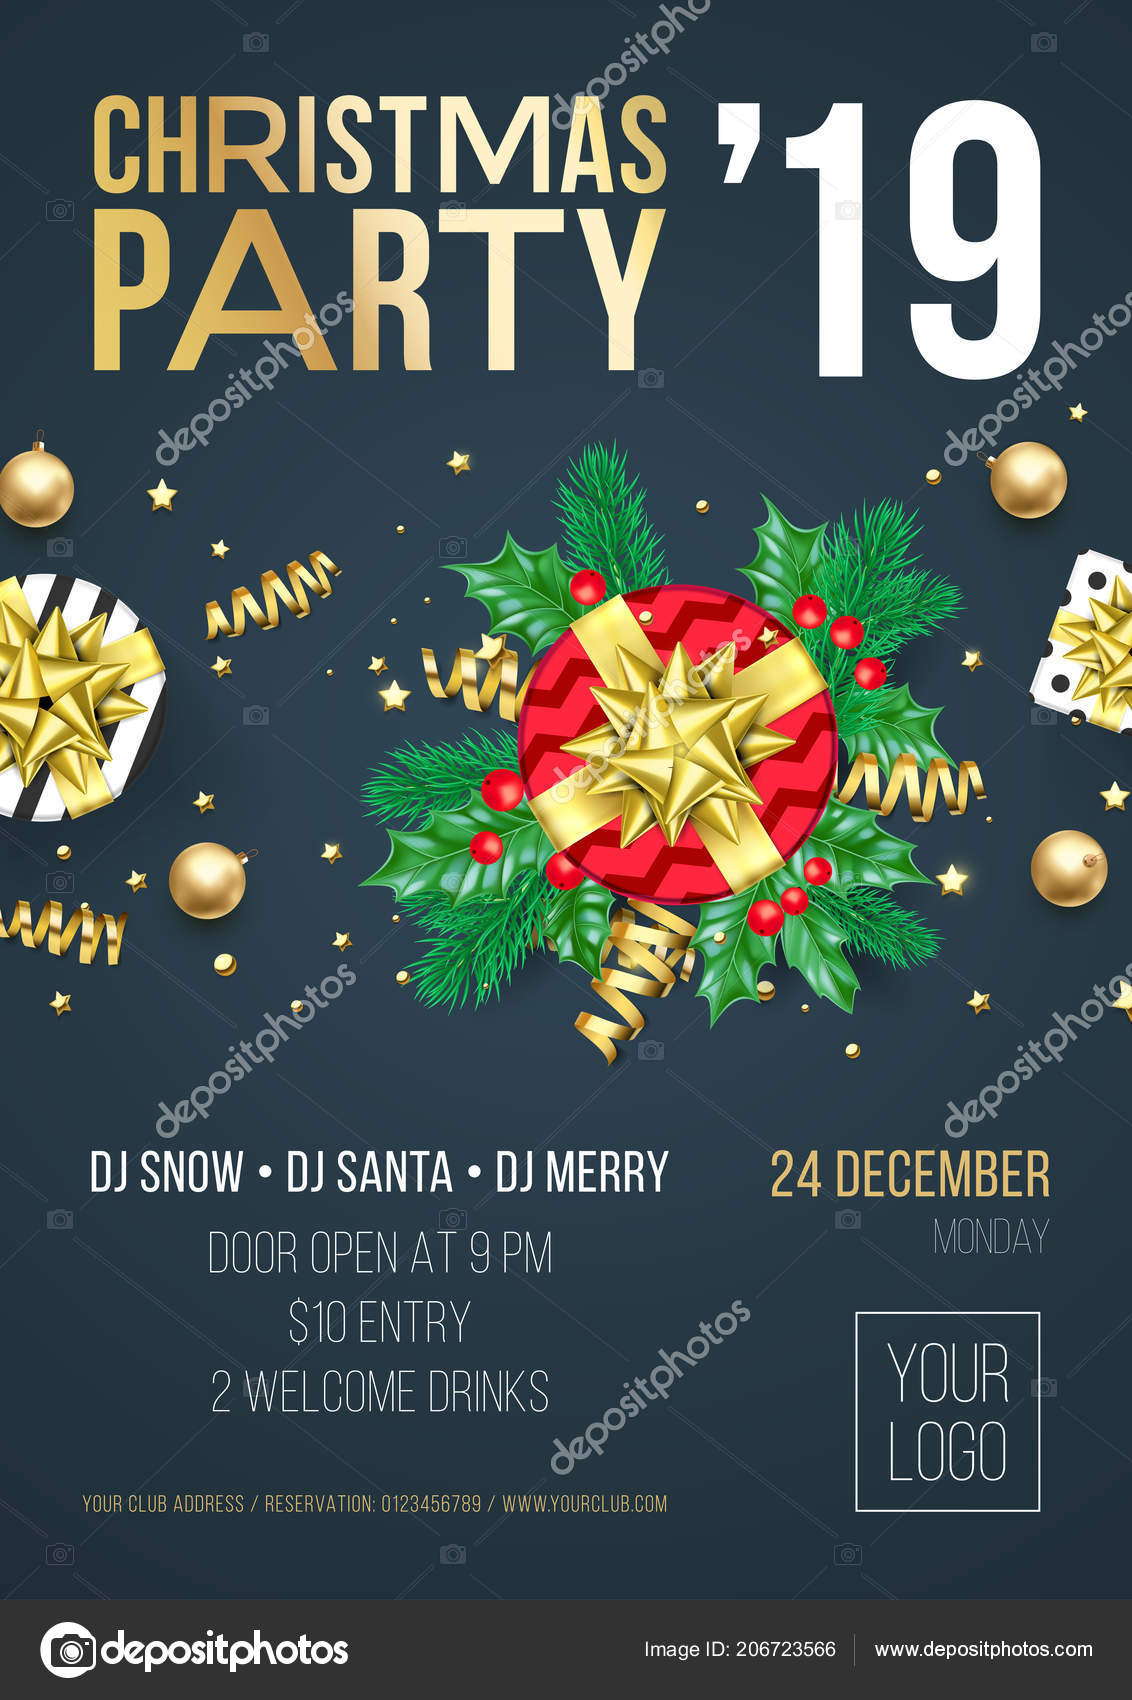 christmas party invitation poster card 2019 happy new year holiday stock vector